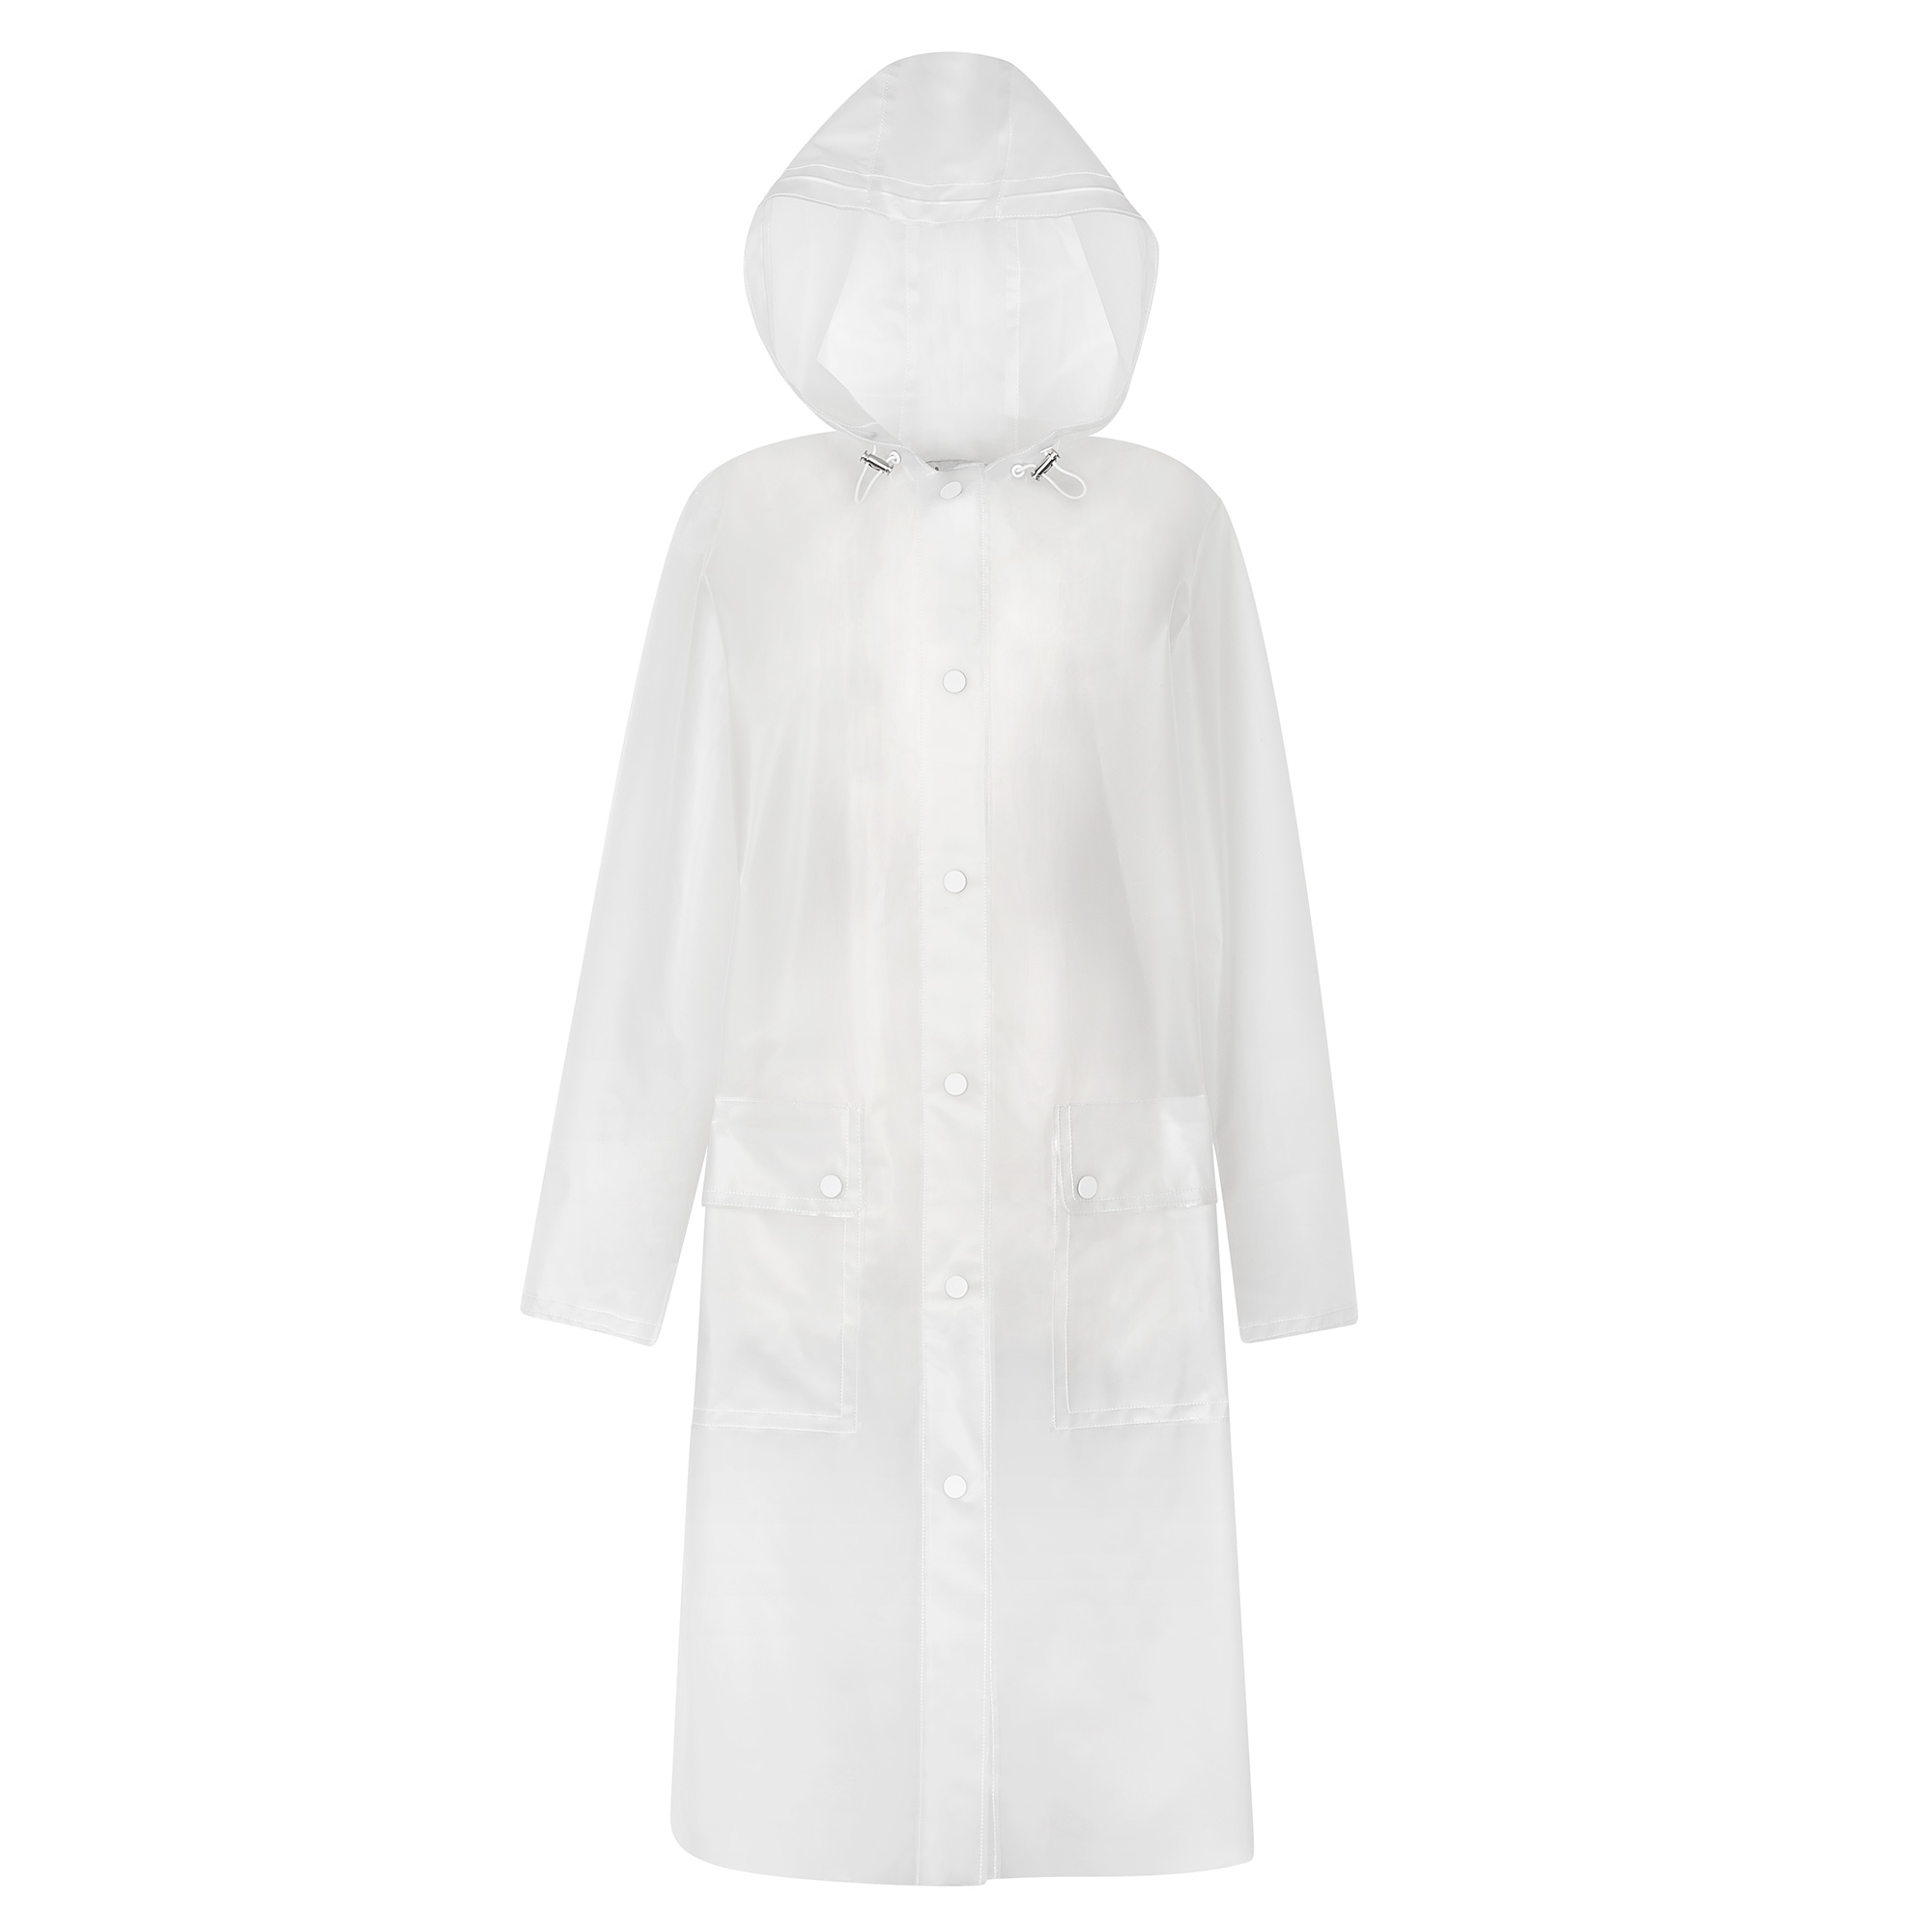 Spring Showers Bring Wet Basements: City Slickers: 10 Wet-Weather Jackets For Spring Showers